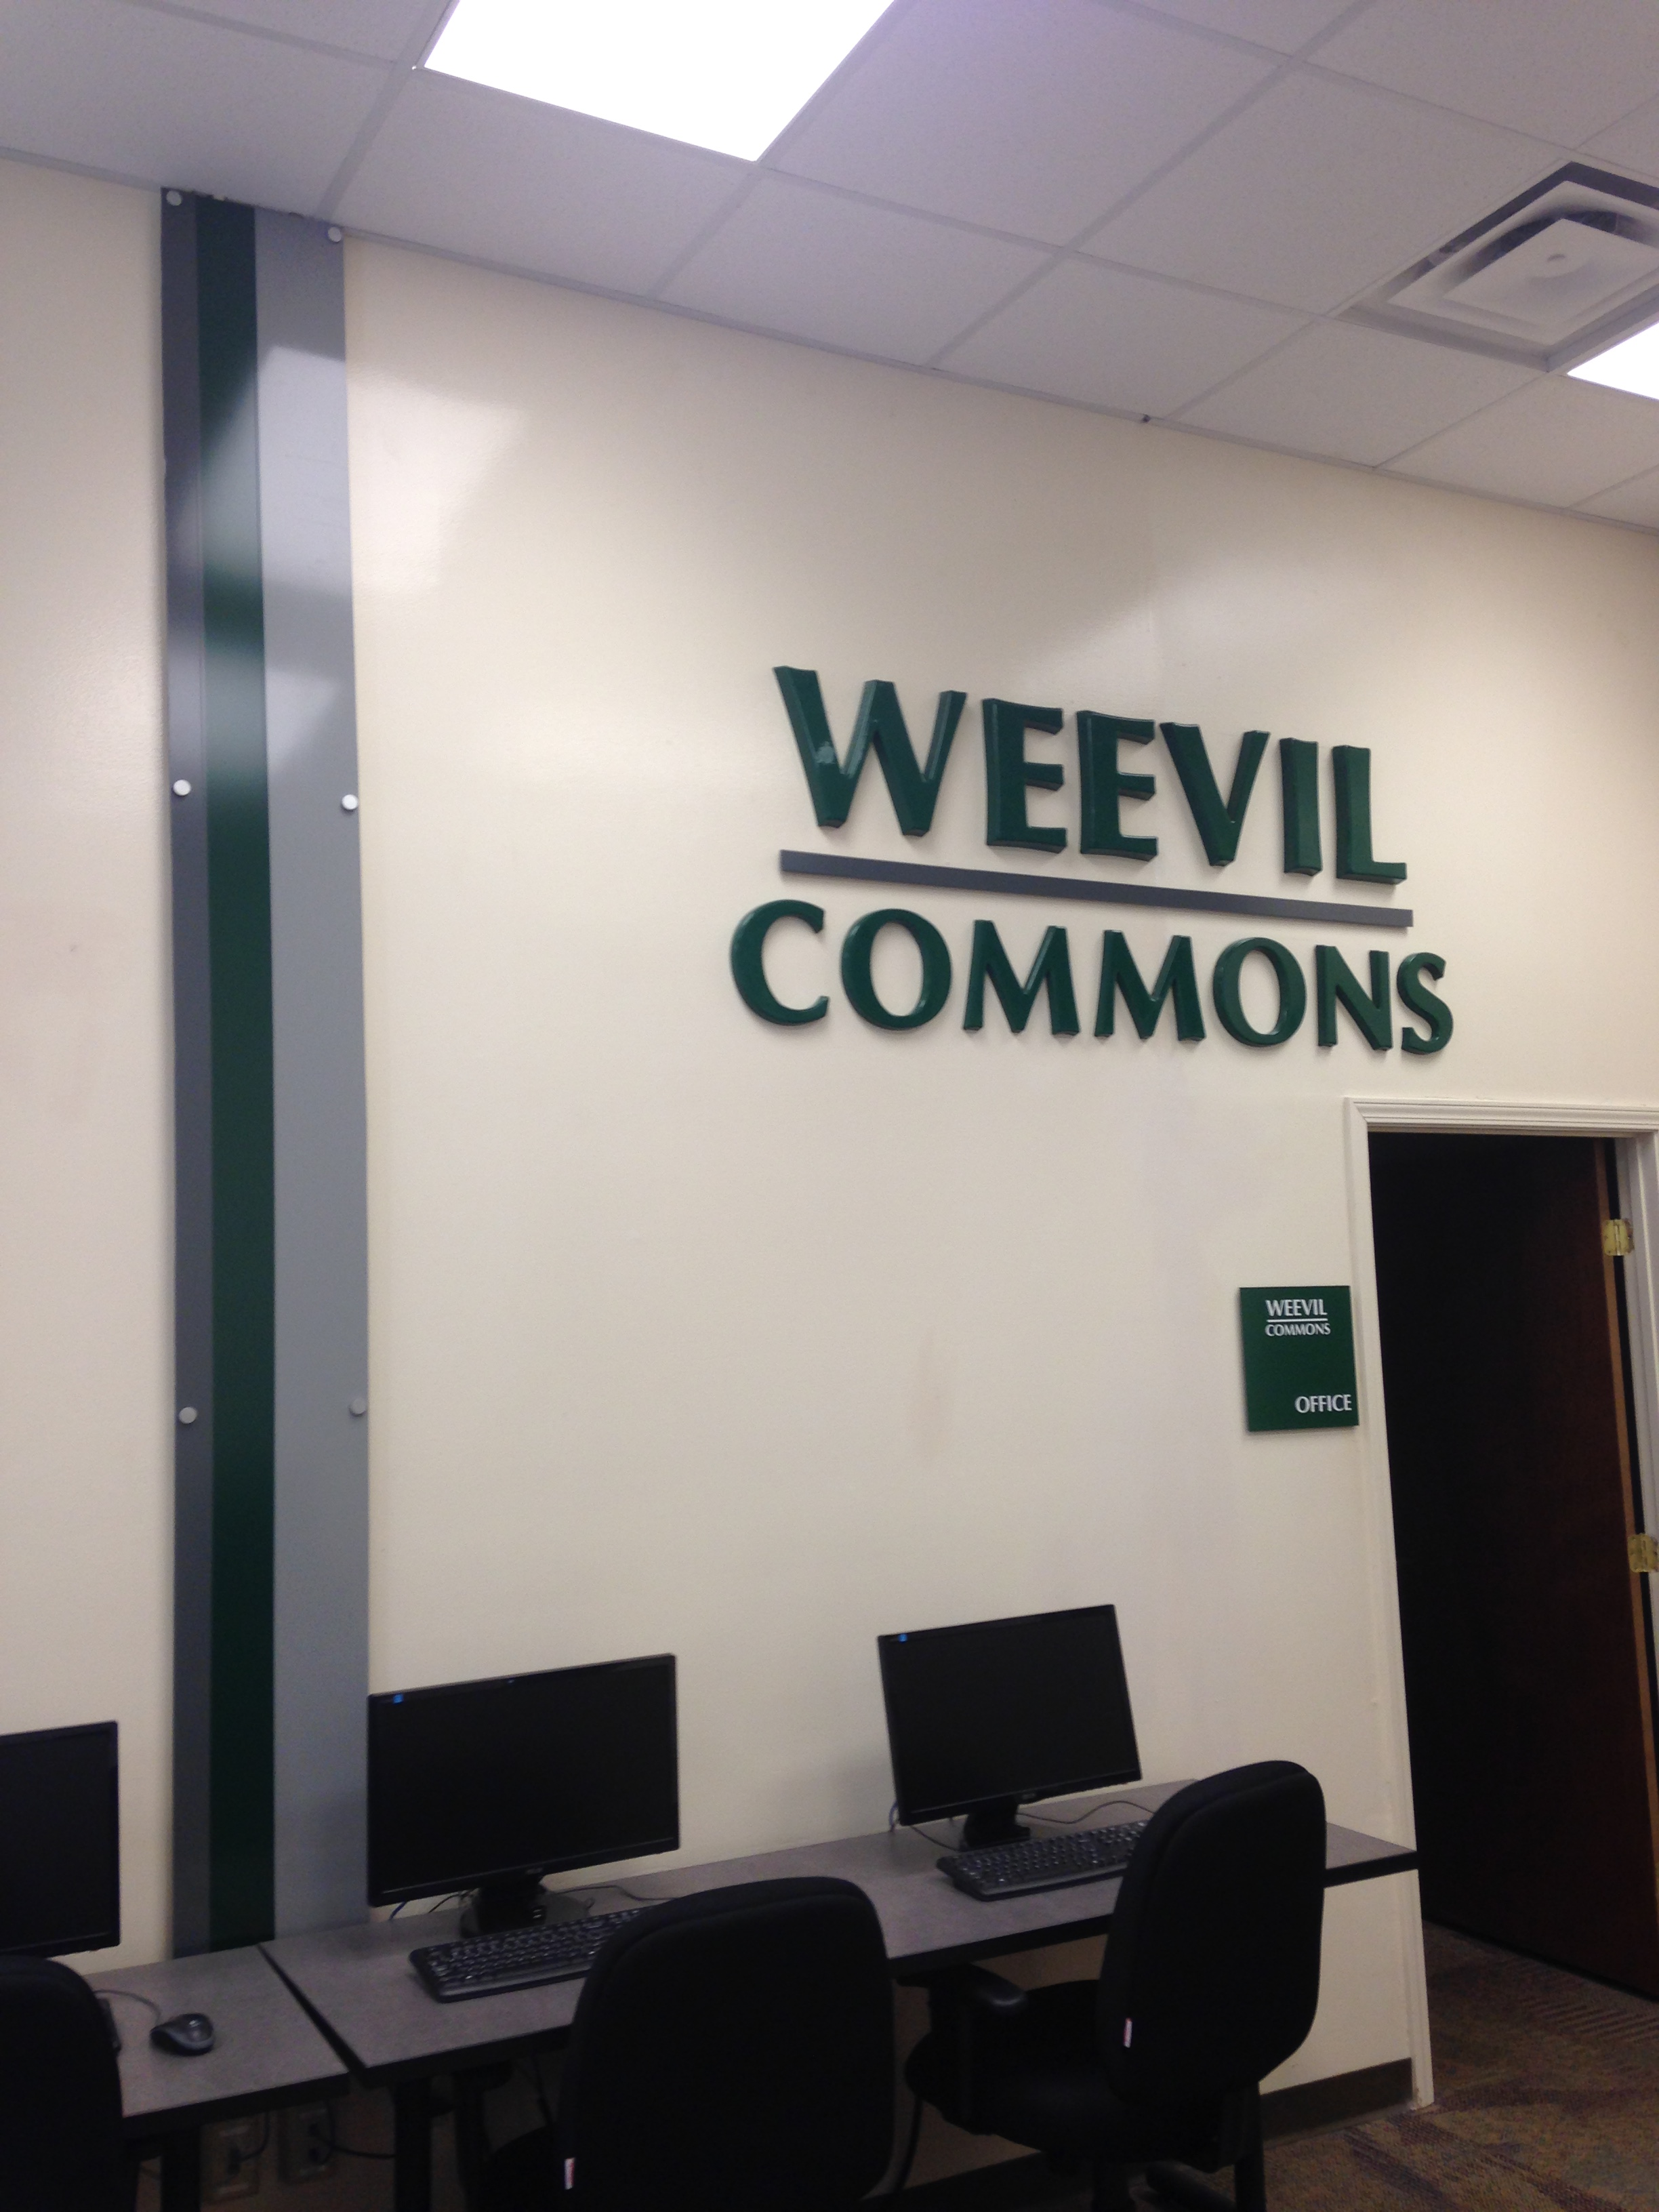 Weevil Commons